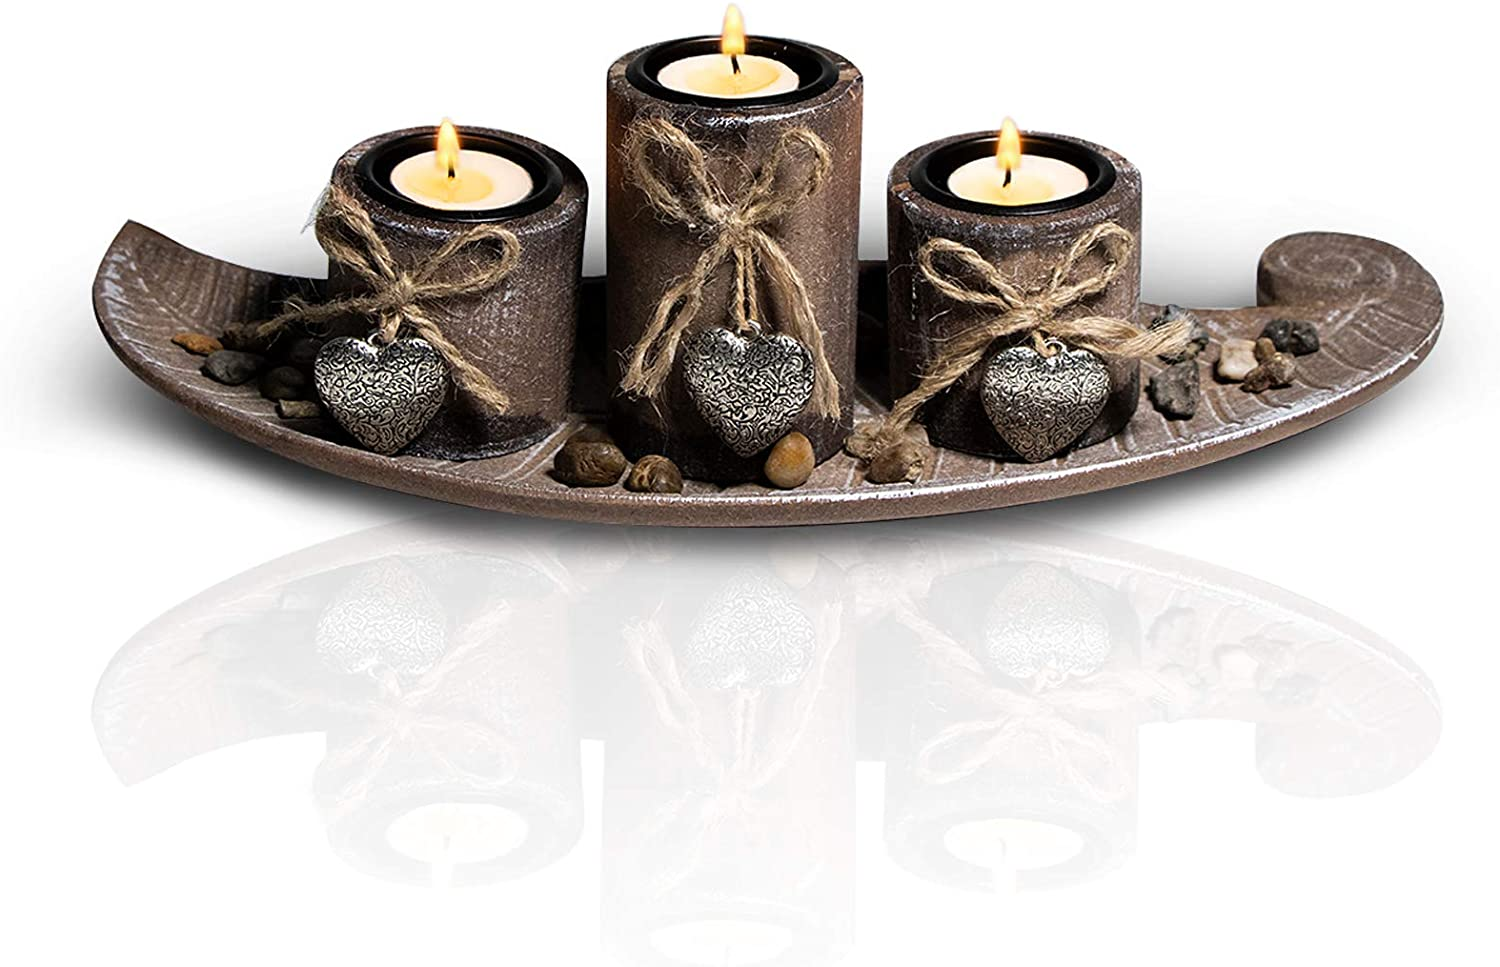 H/L Tealight Holders Candles, Votive Candle Holder Set of 3, Wood Candle Holders with Tray Heart Shaped Sign - for Table Decorative Centerpieces   Living Room   Bathroom